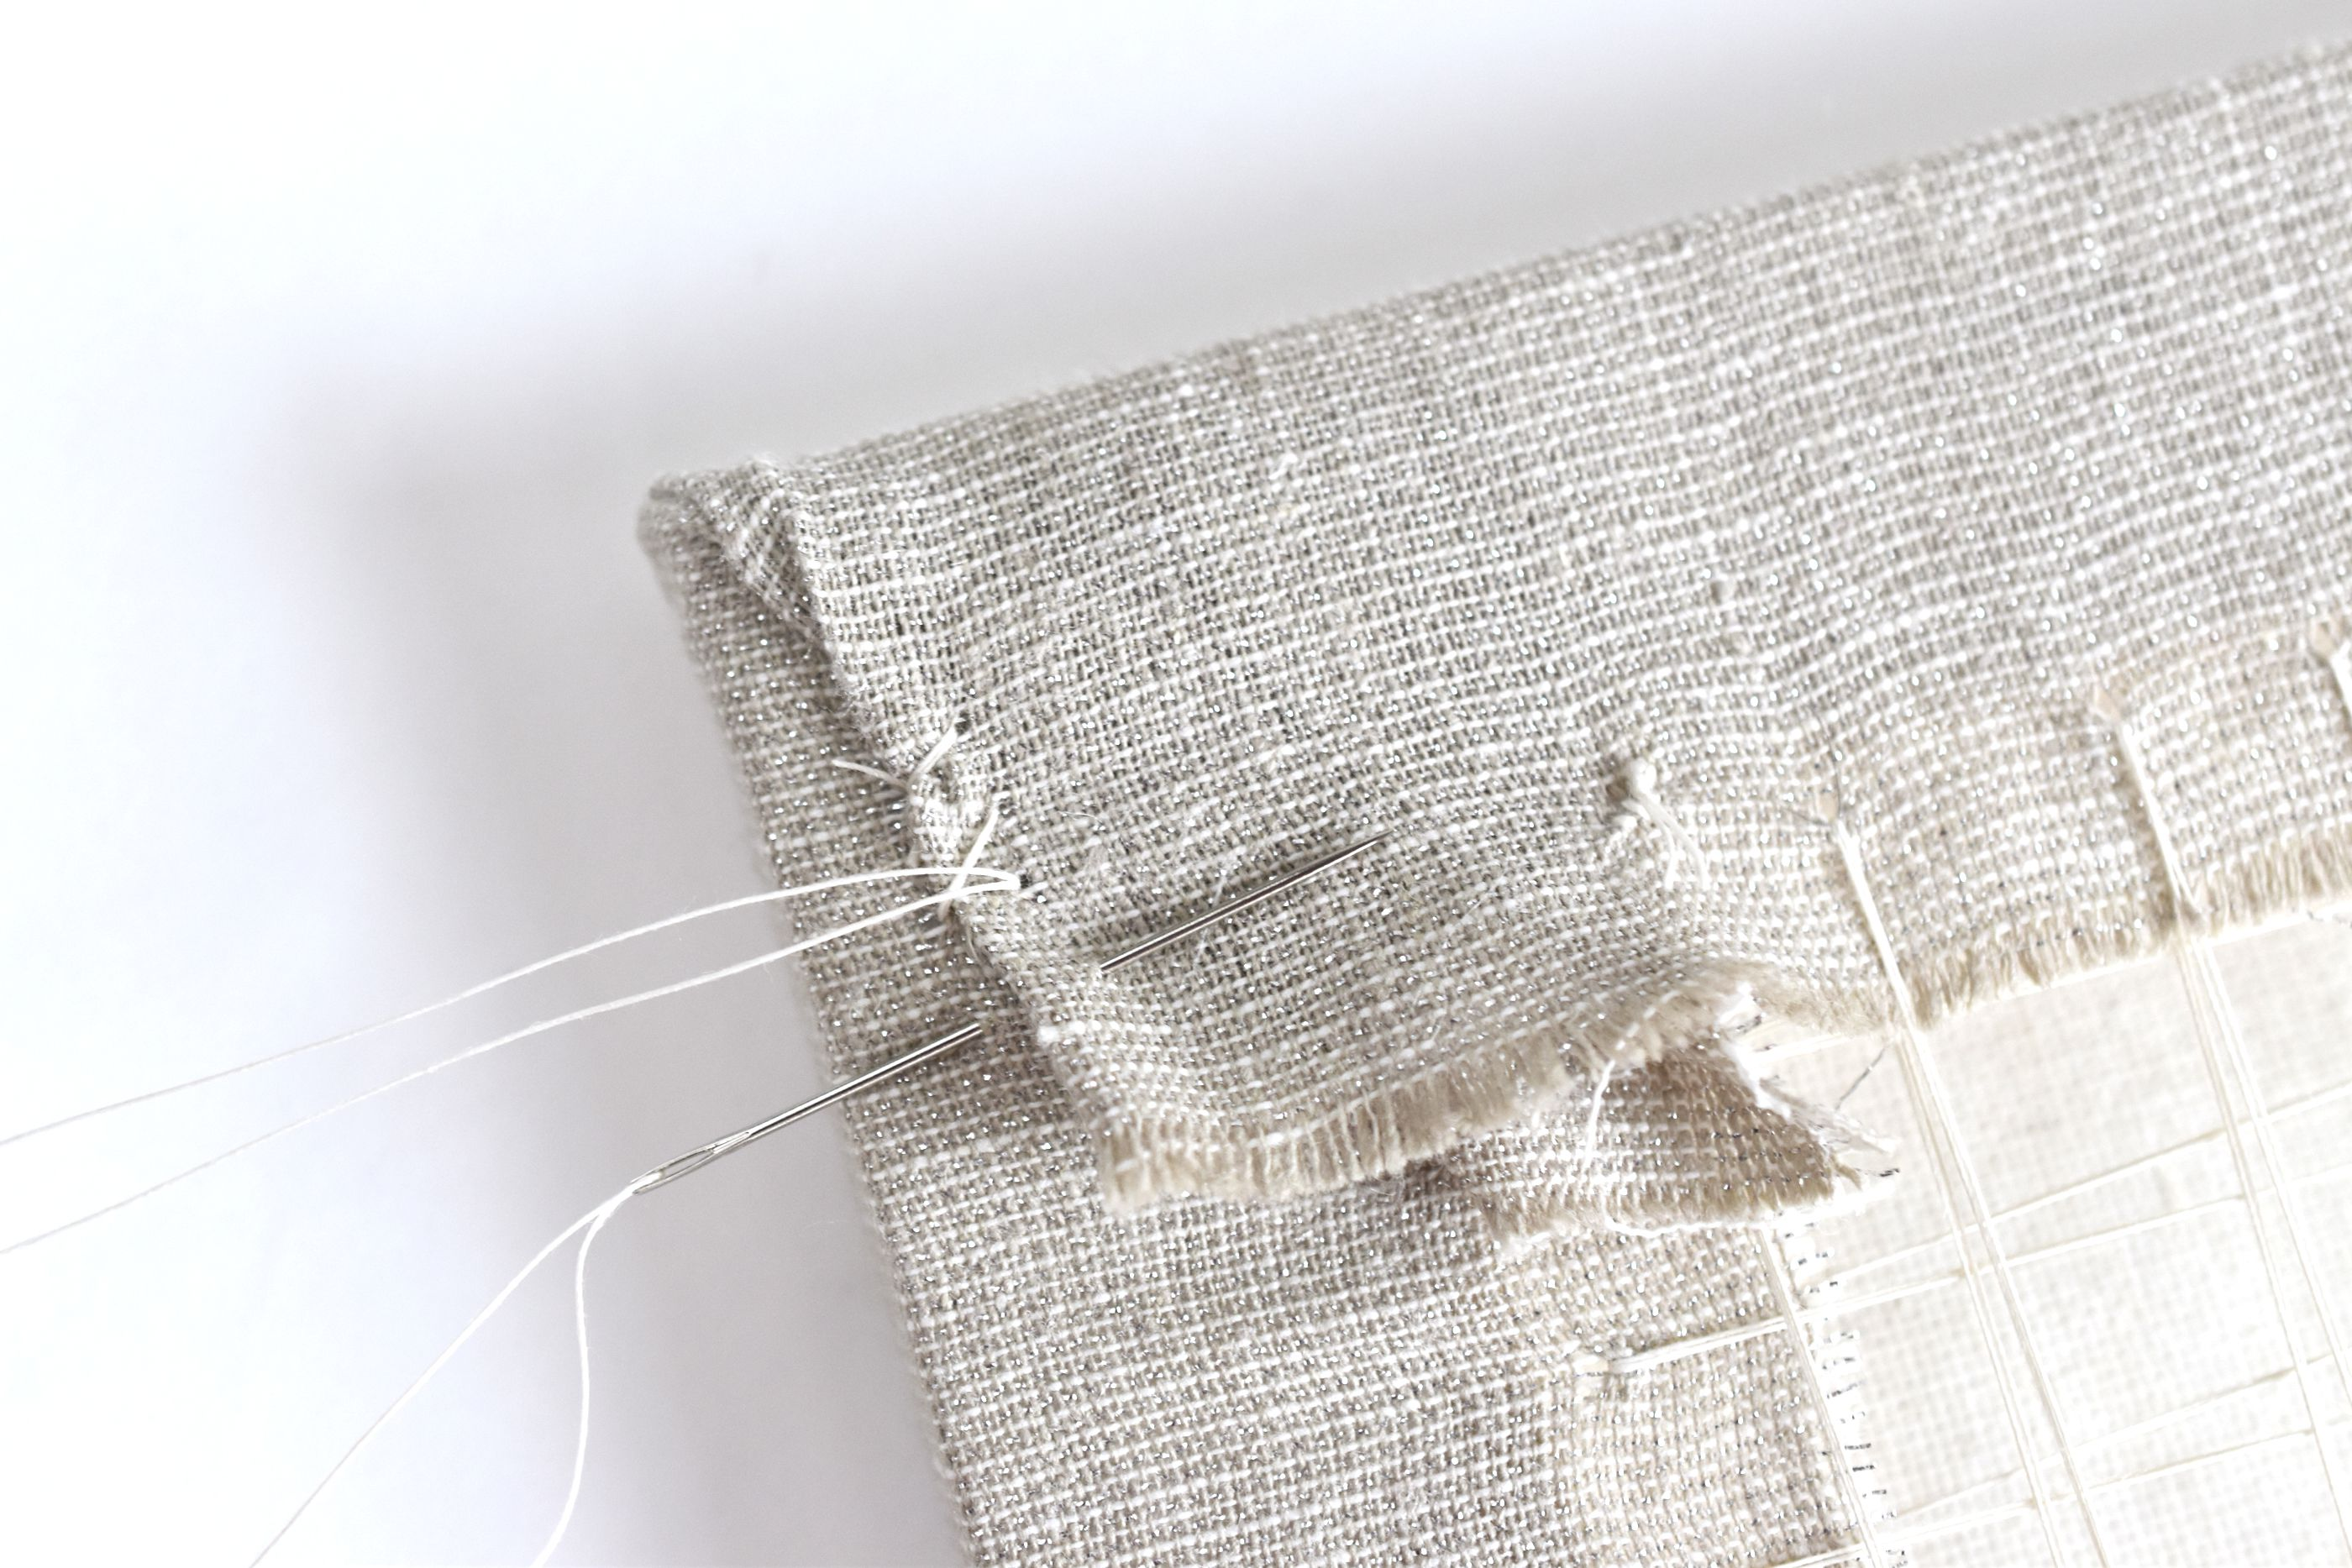 Stitch the Folded Corner to Secure the Fabric